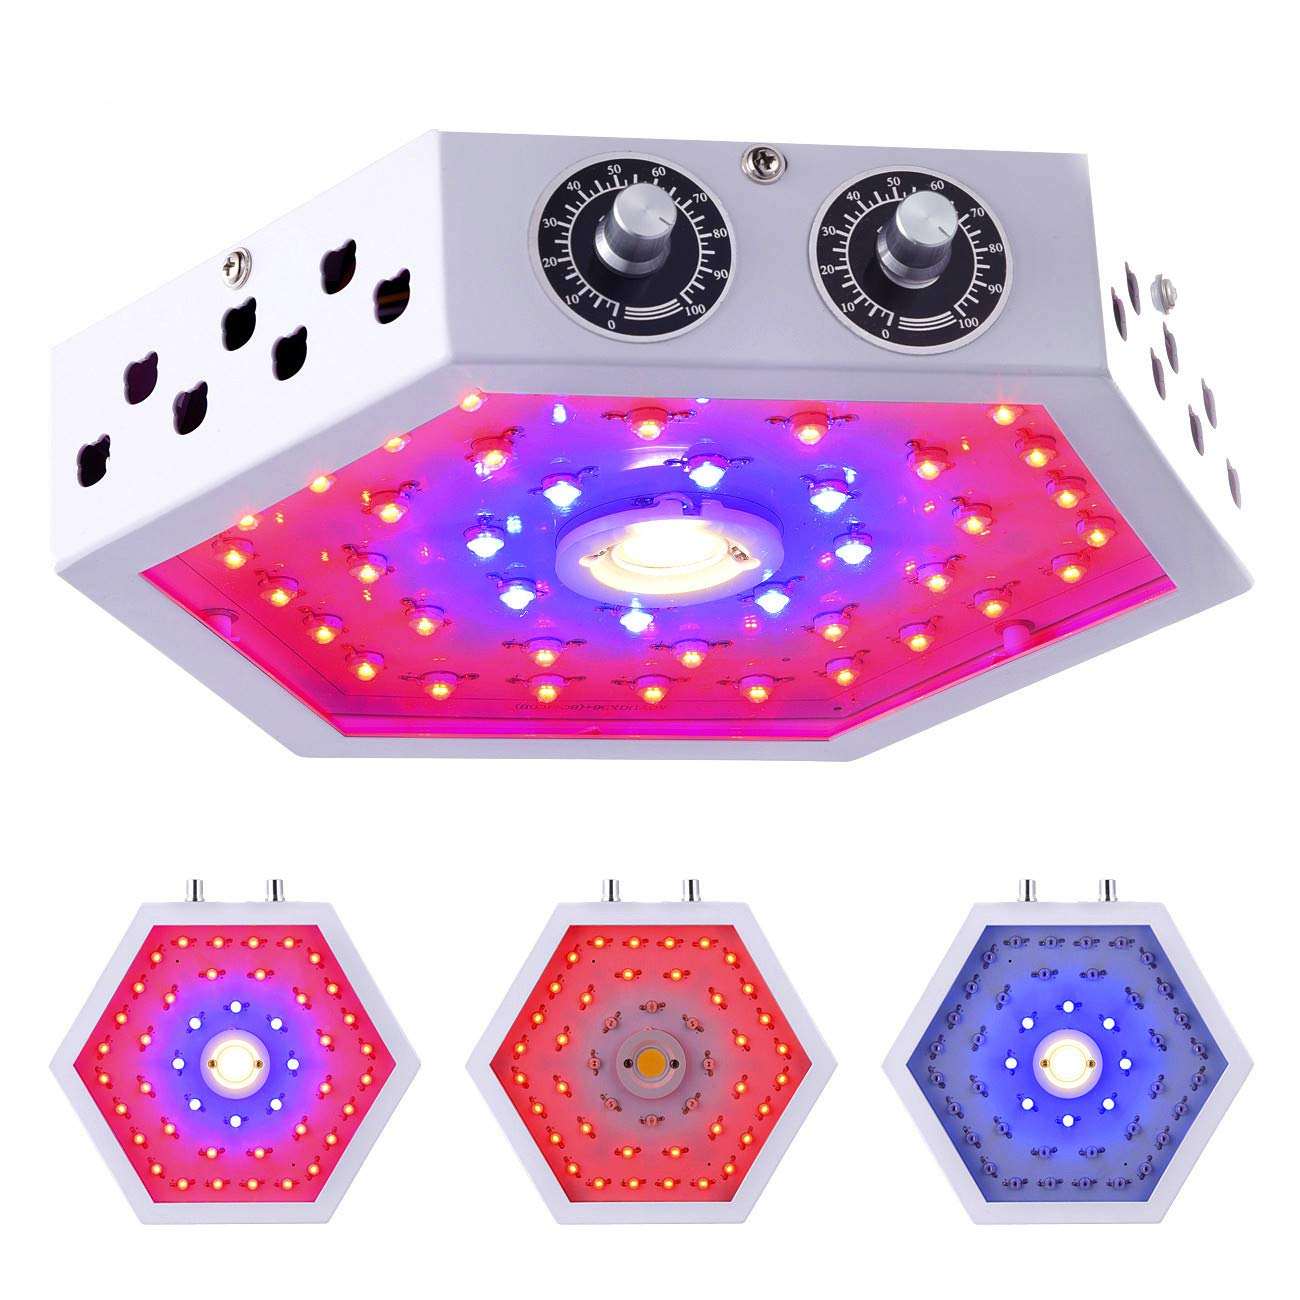 GUANHONG LED Plant Grow Light 1000W Ajustable Knobs Full Spectrum Panel Growing Lamp Suitable for Greenhouse Seedling Veg and Flower(Dual-Chips)